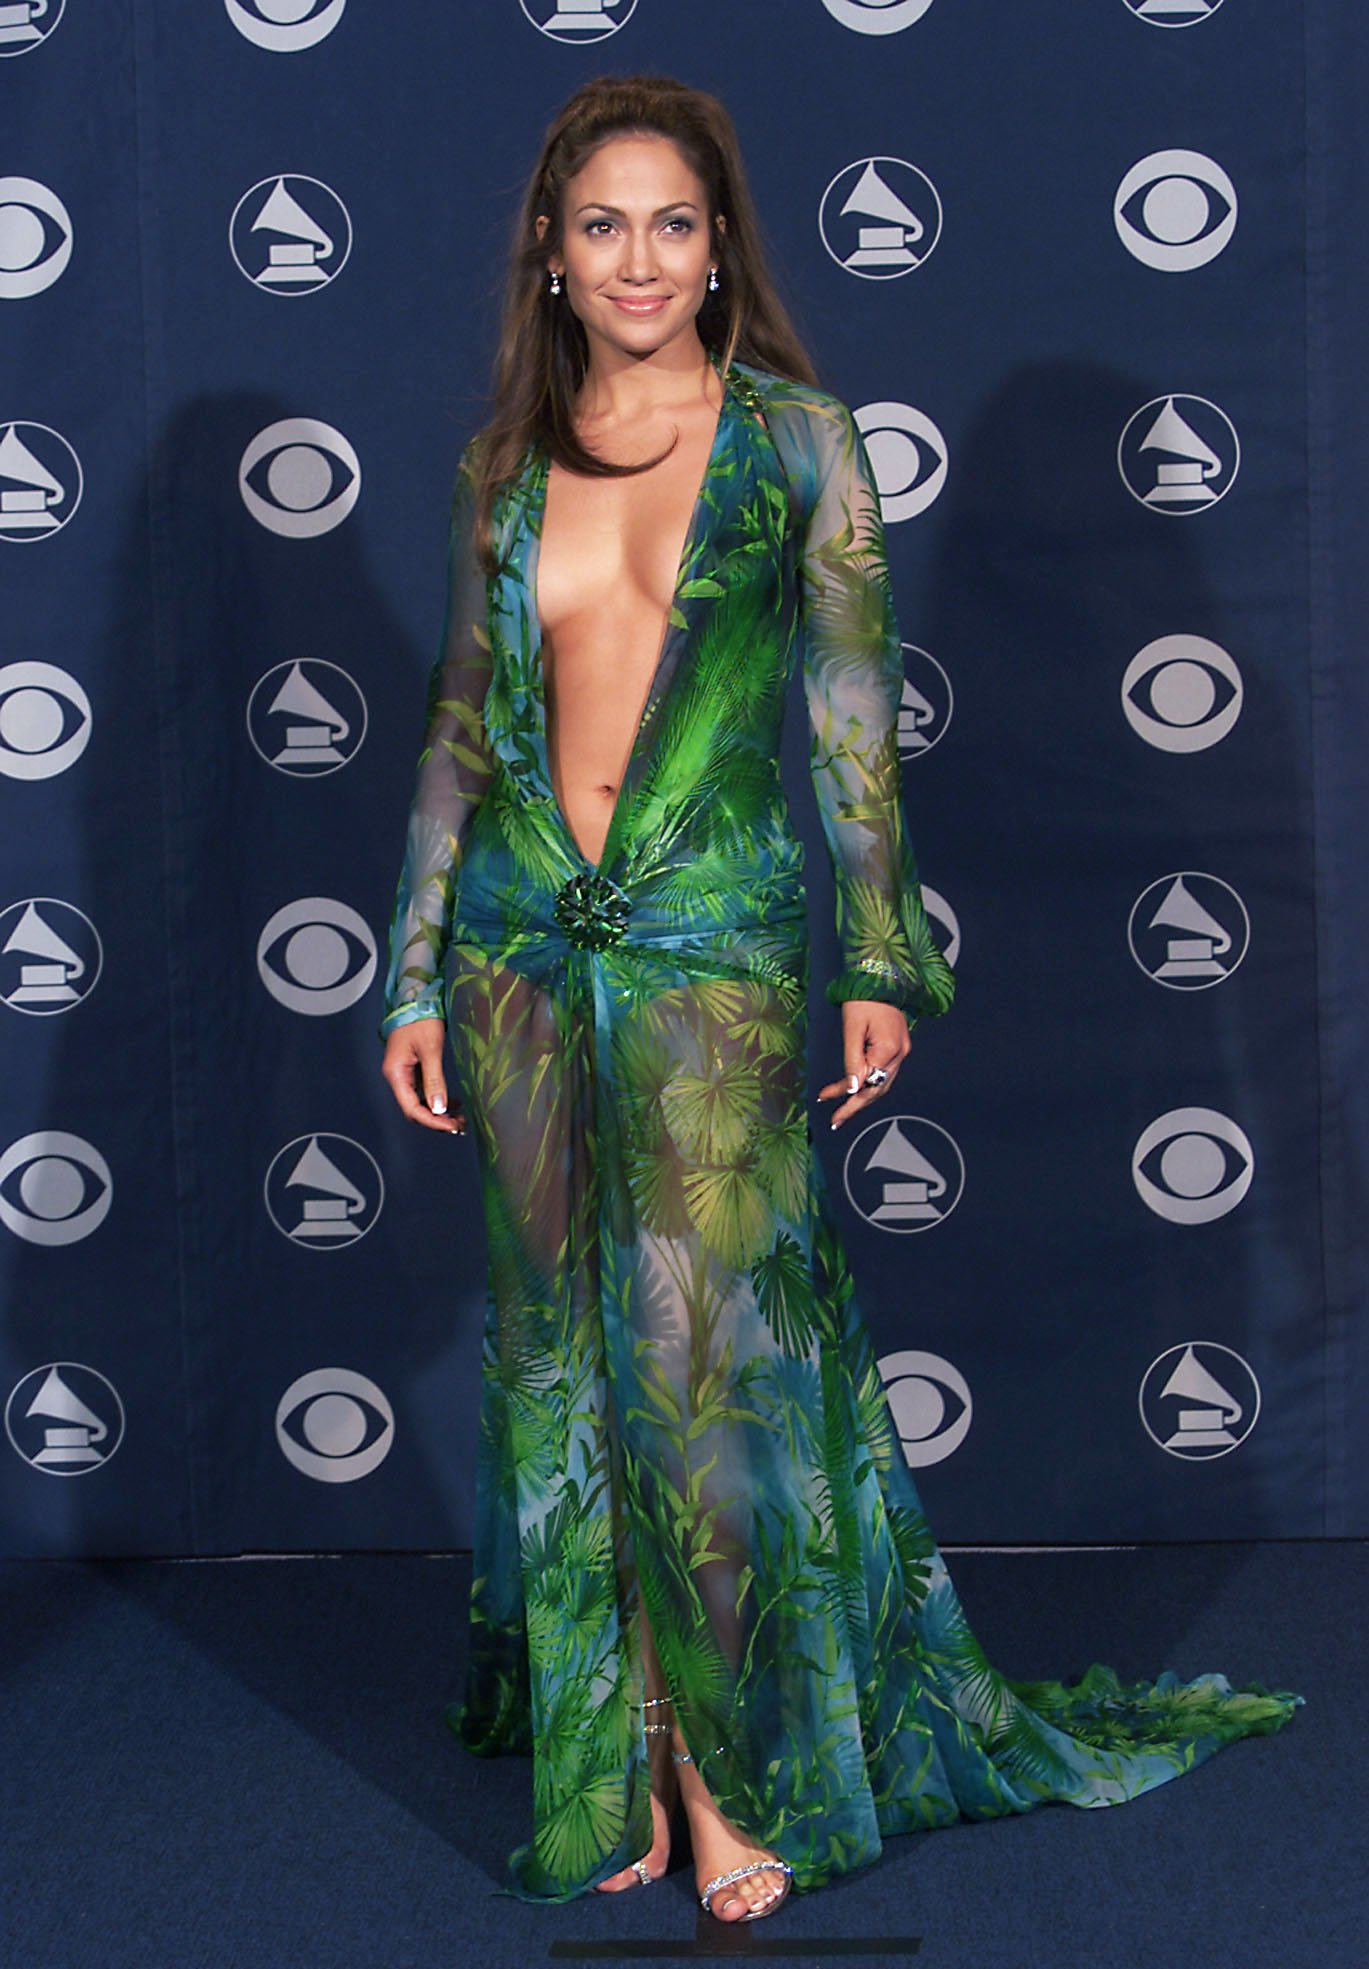 ennifer Lopez in Versace at the 42nd Grammy Awards held in Los Angeles, CA on February 23, 2000. | Source: Getty Images